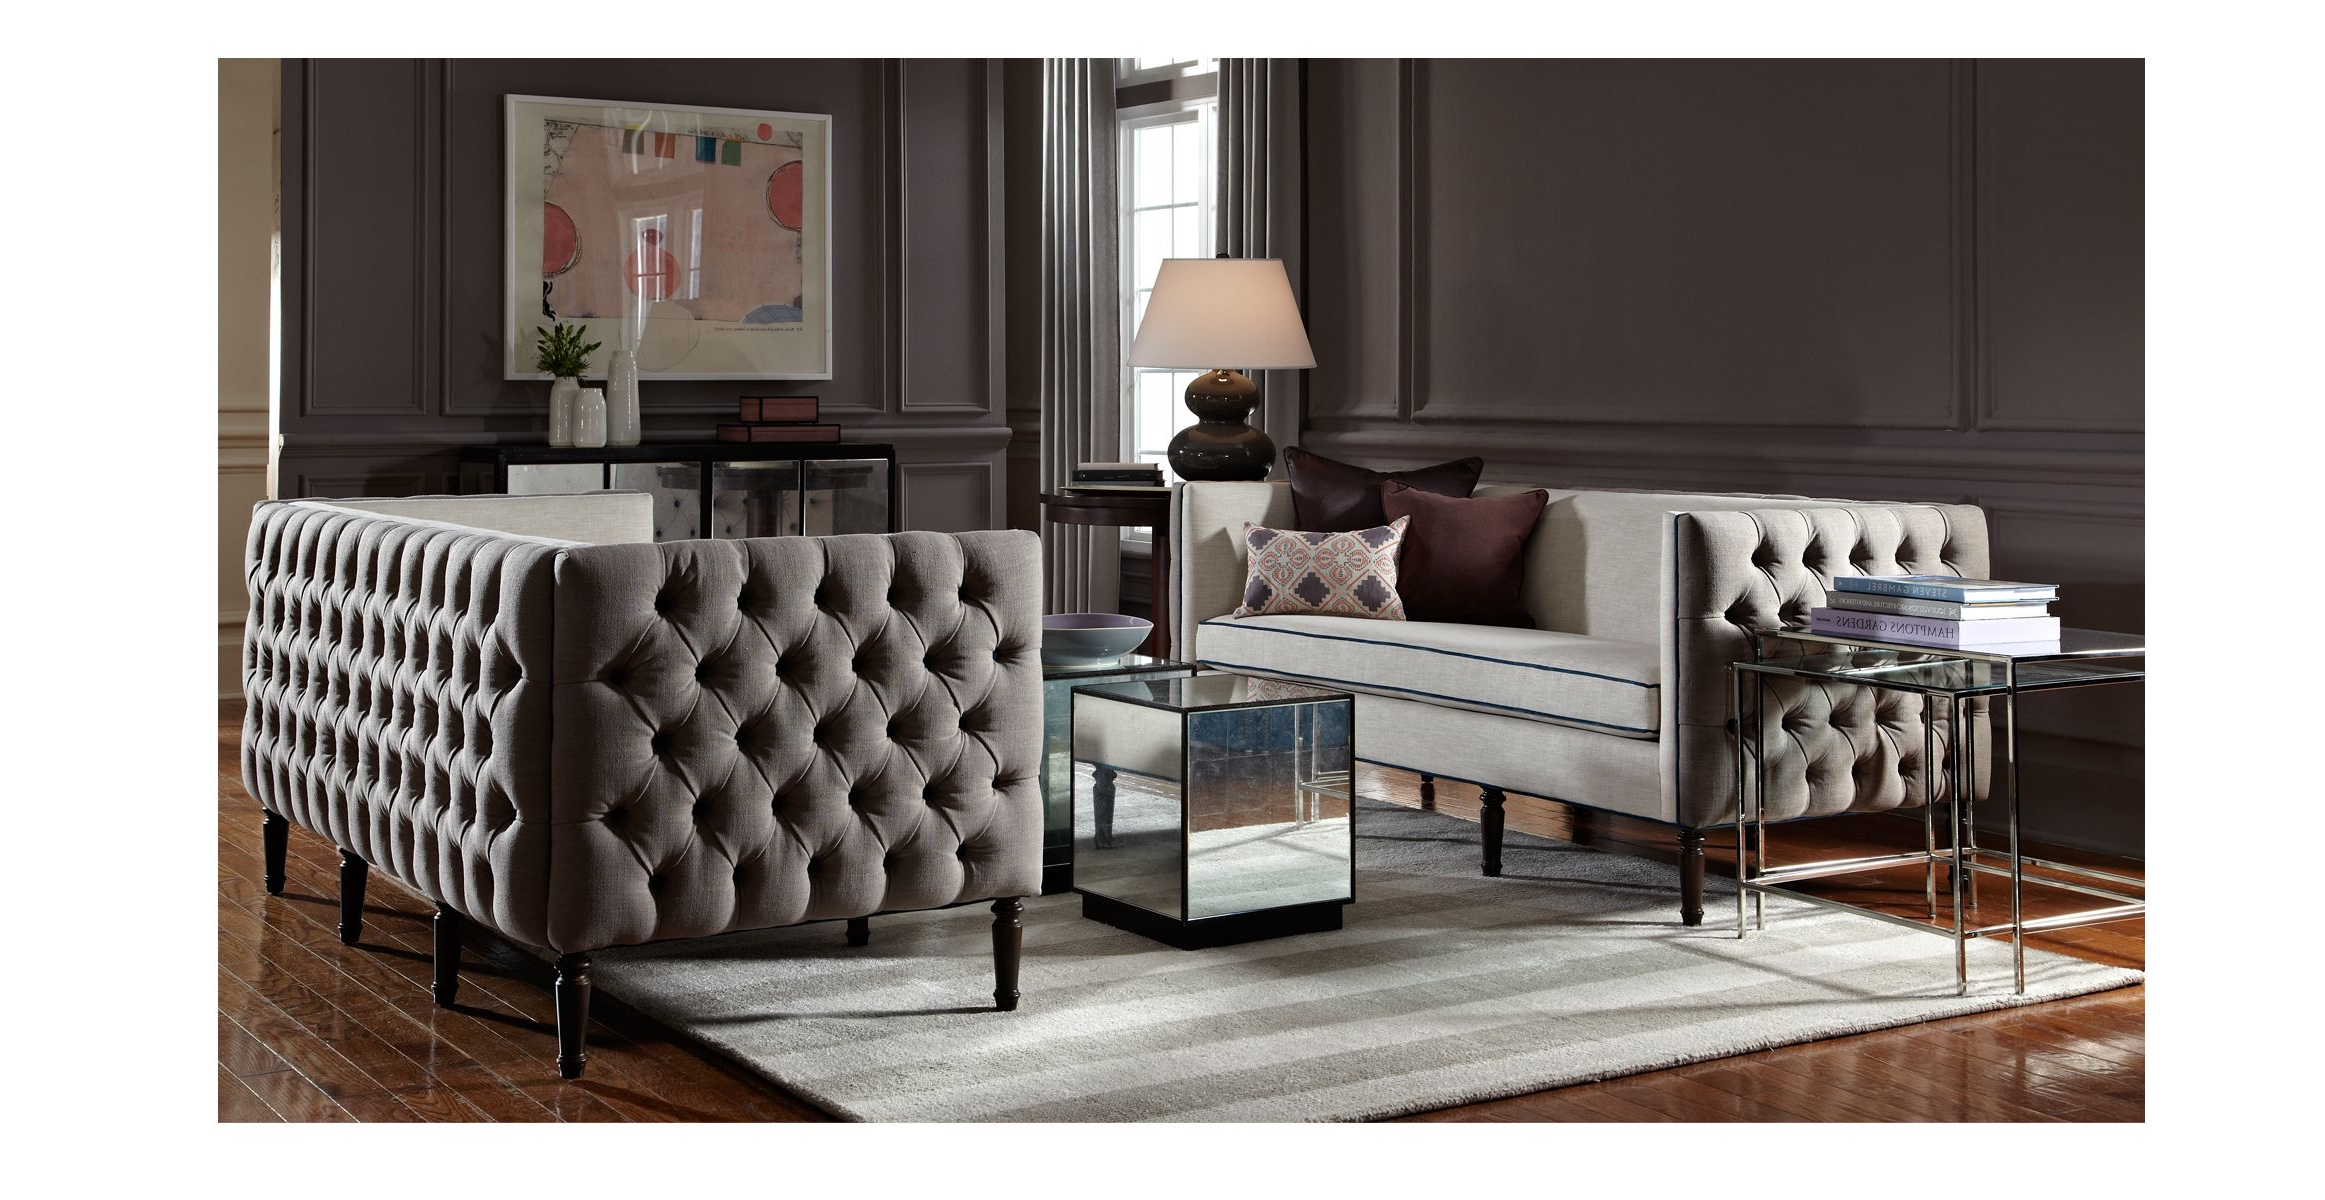 Modern Tufted Sofa – Google Search | Turn Of The Century Moderne For Parsons Travertine Top & Stainless Steel Base 48X16 Console Tables (View 9 of 15)